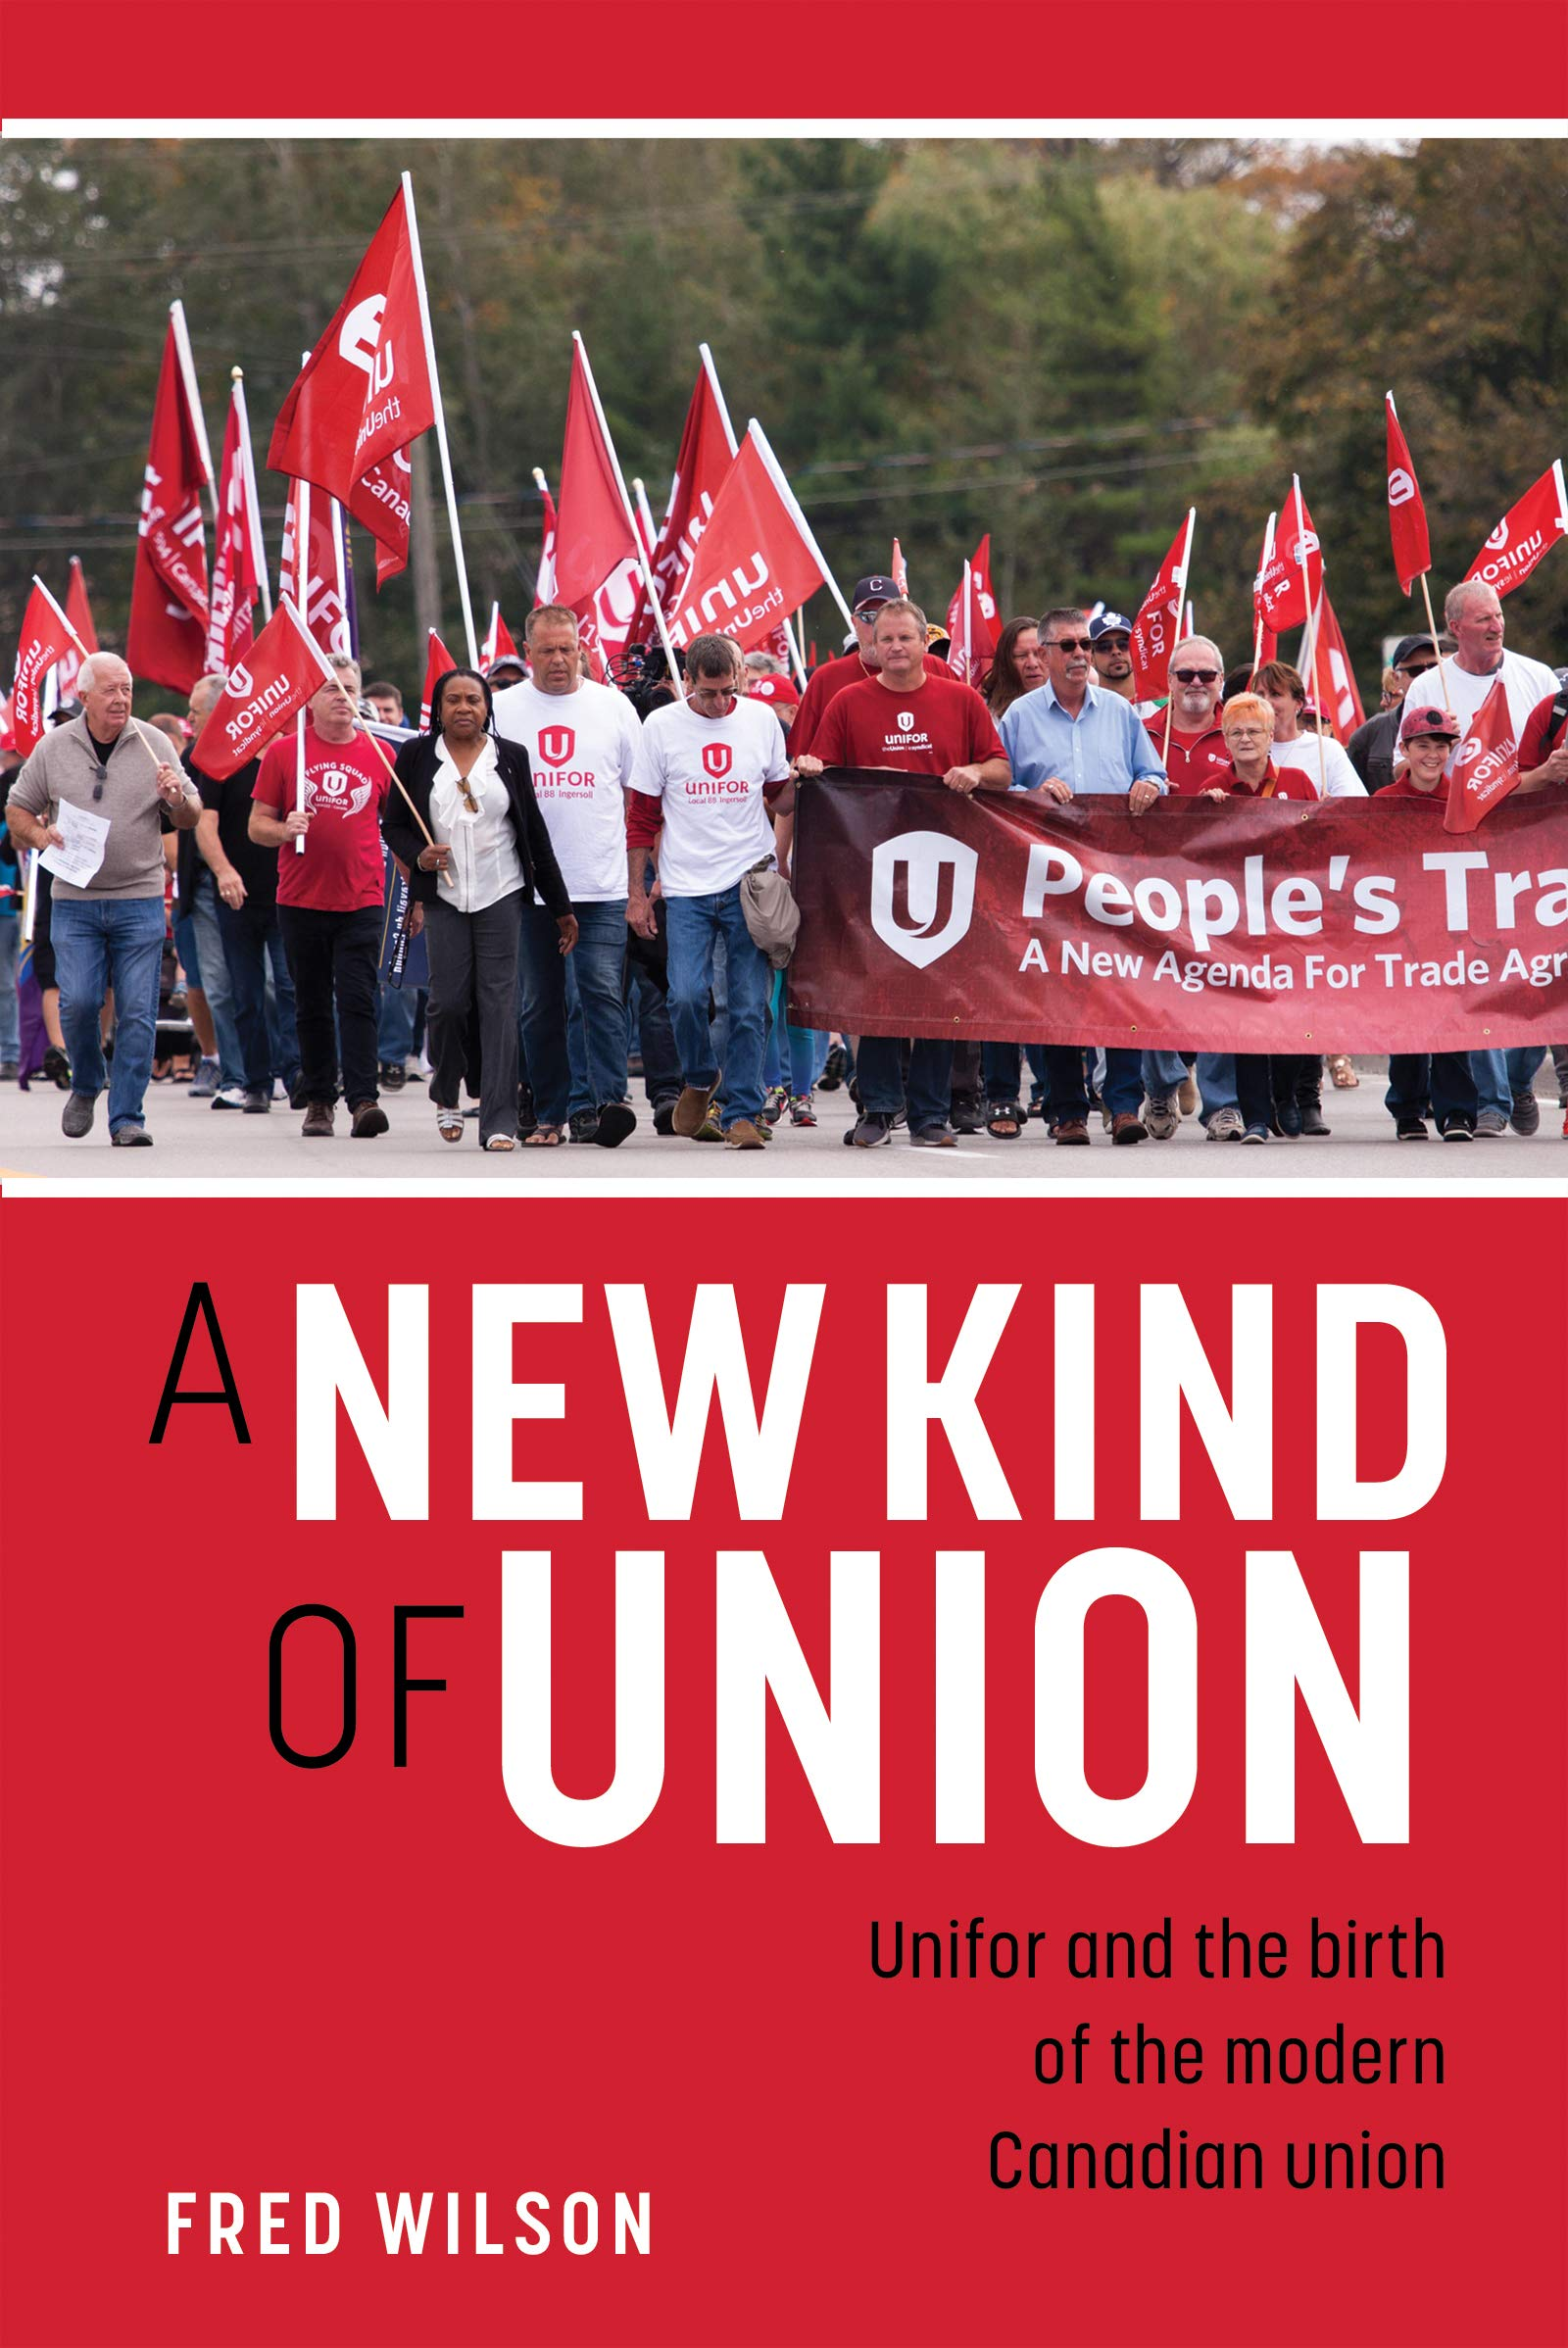 A New Kind of Union: Unifor and the birth of the modern Canadian union